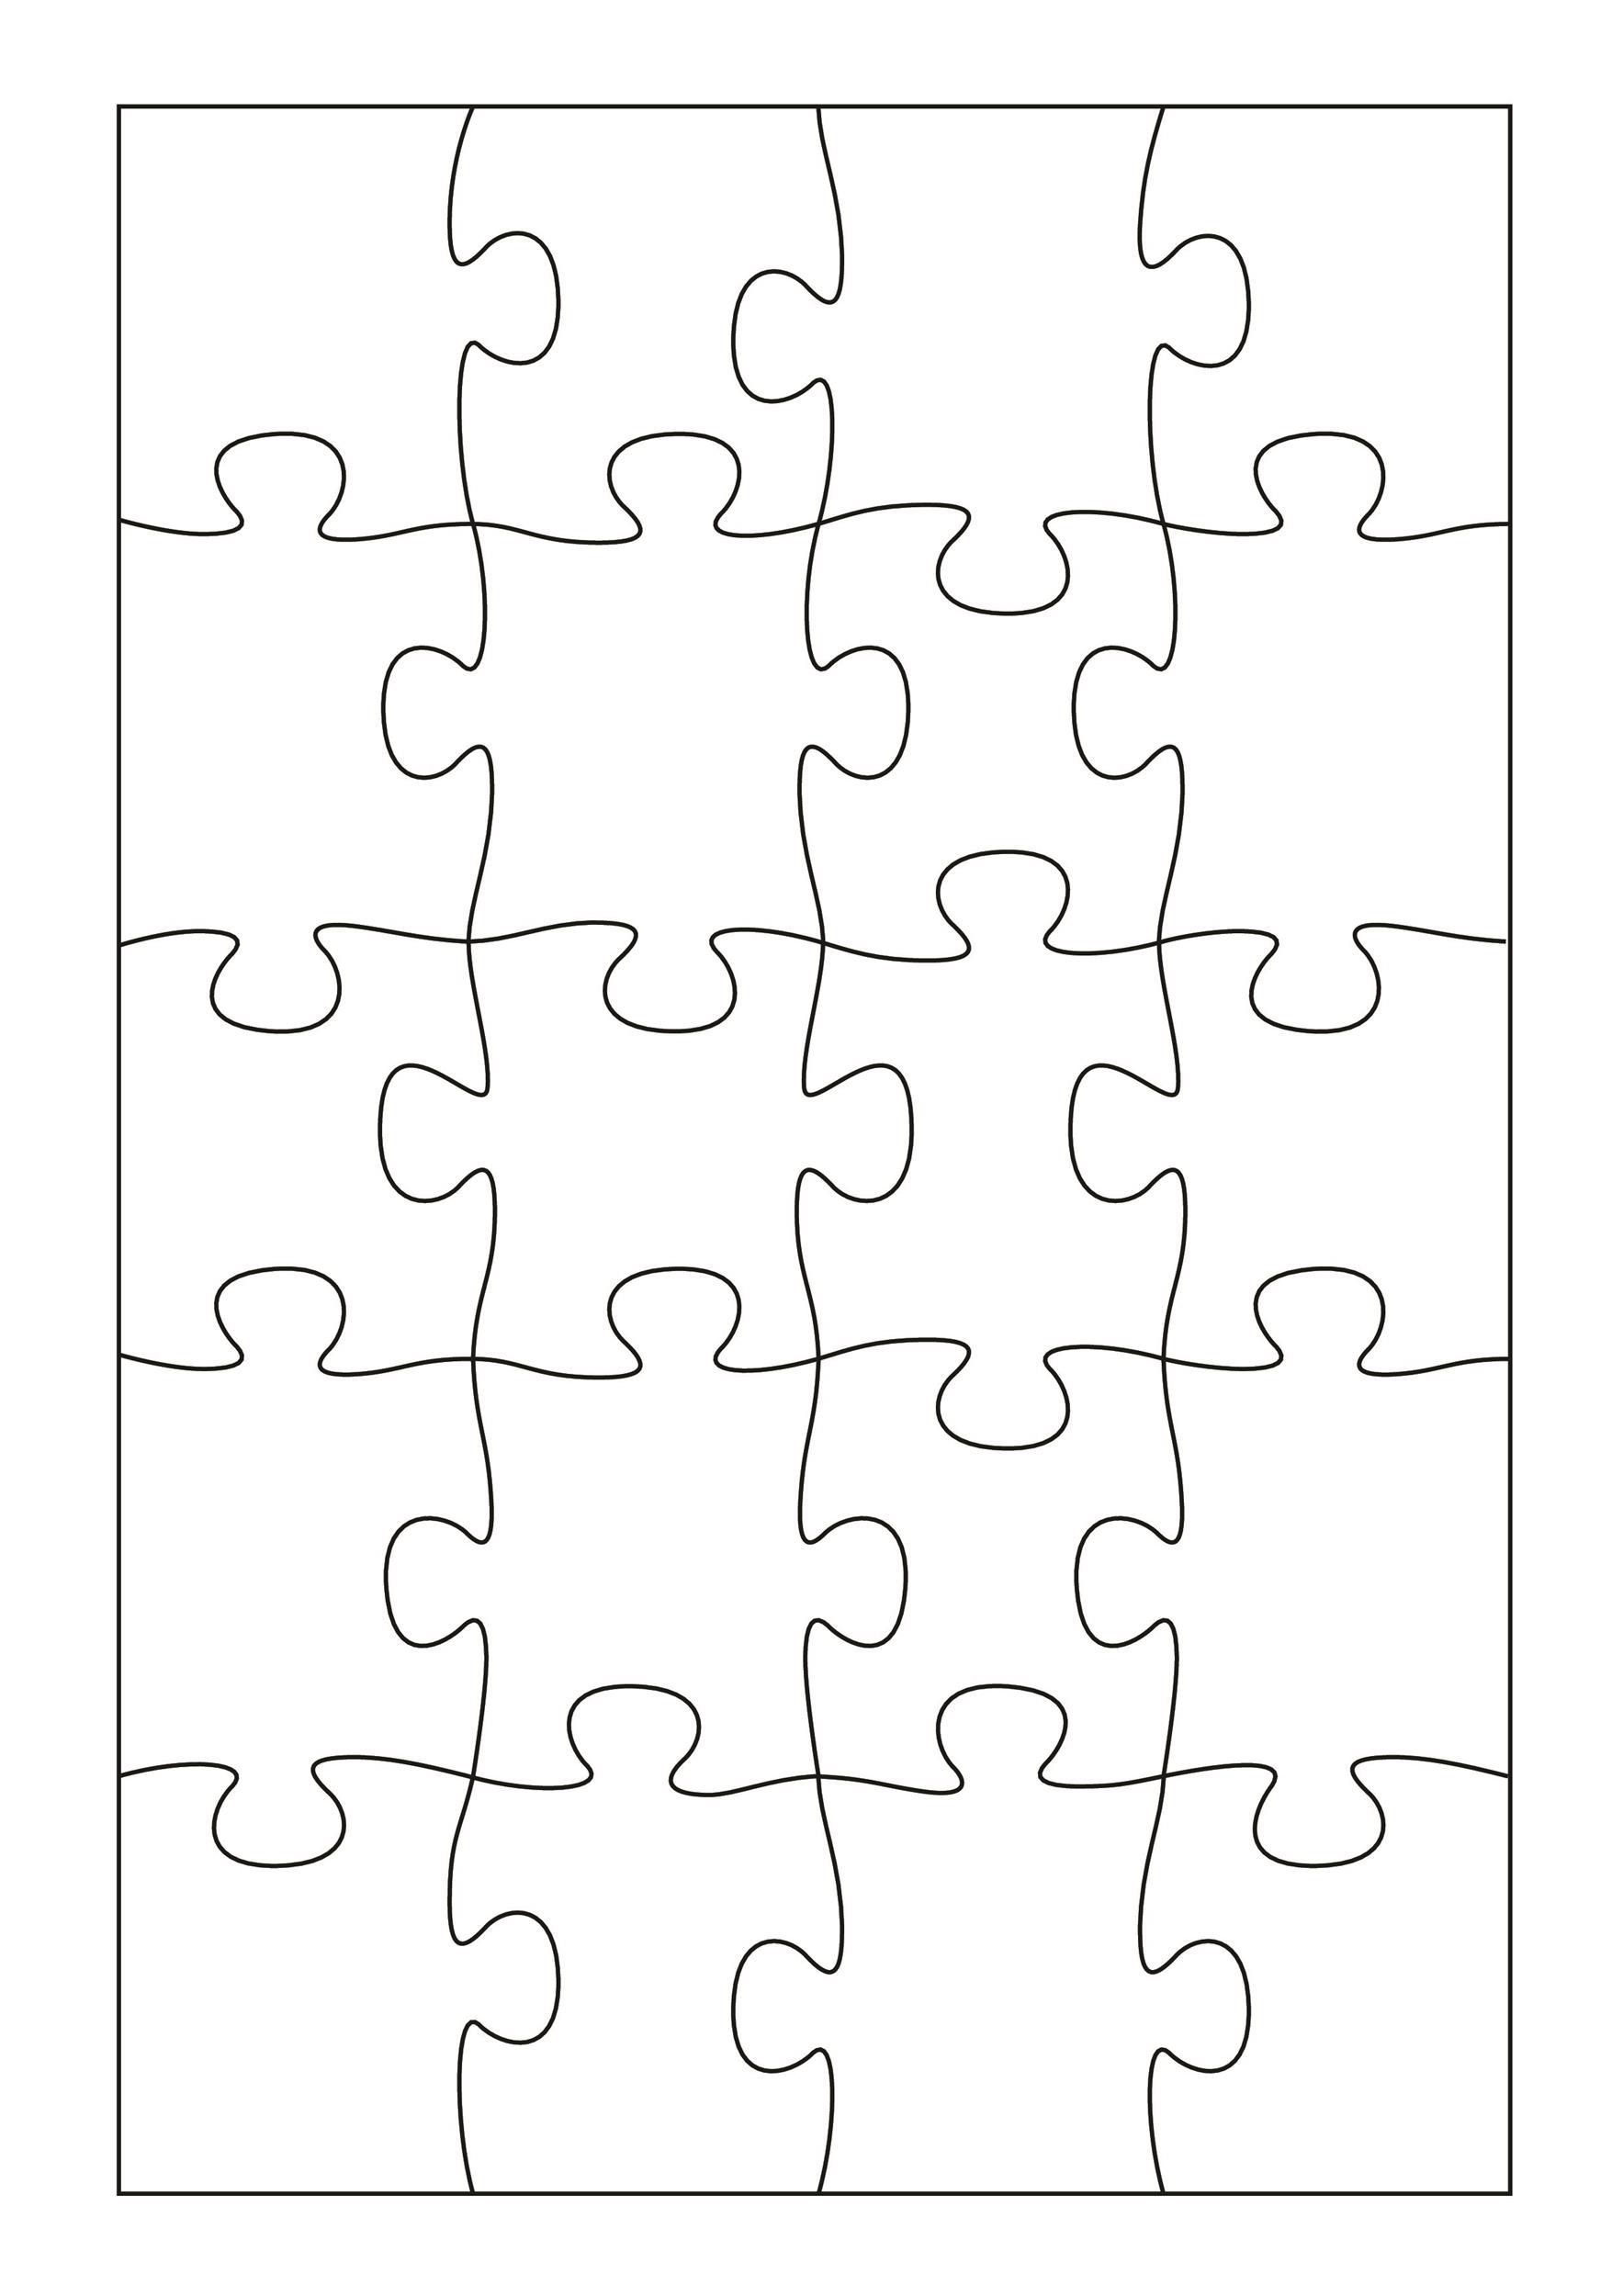 009 Phenomenal Jig Saw Puzzle Template Highest Quality  Printable Blank Jigsaw Vector Free PngFull